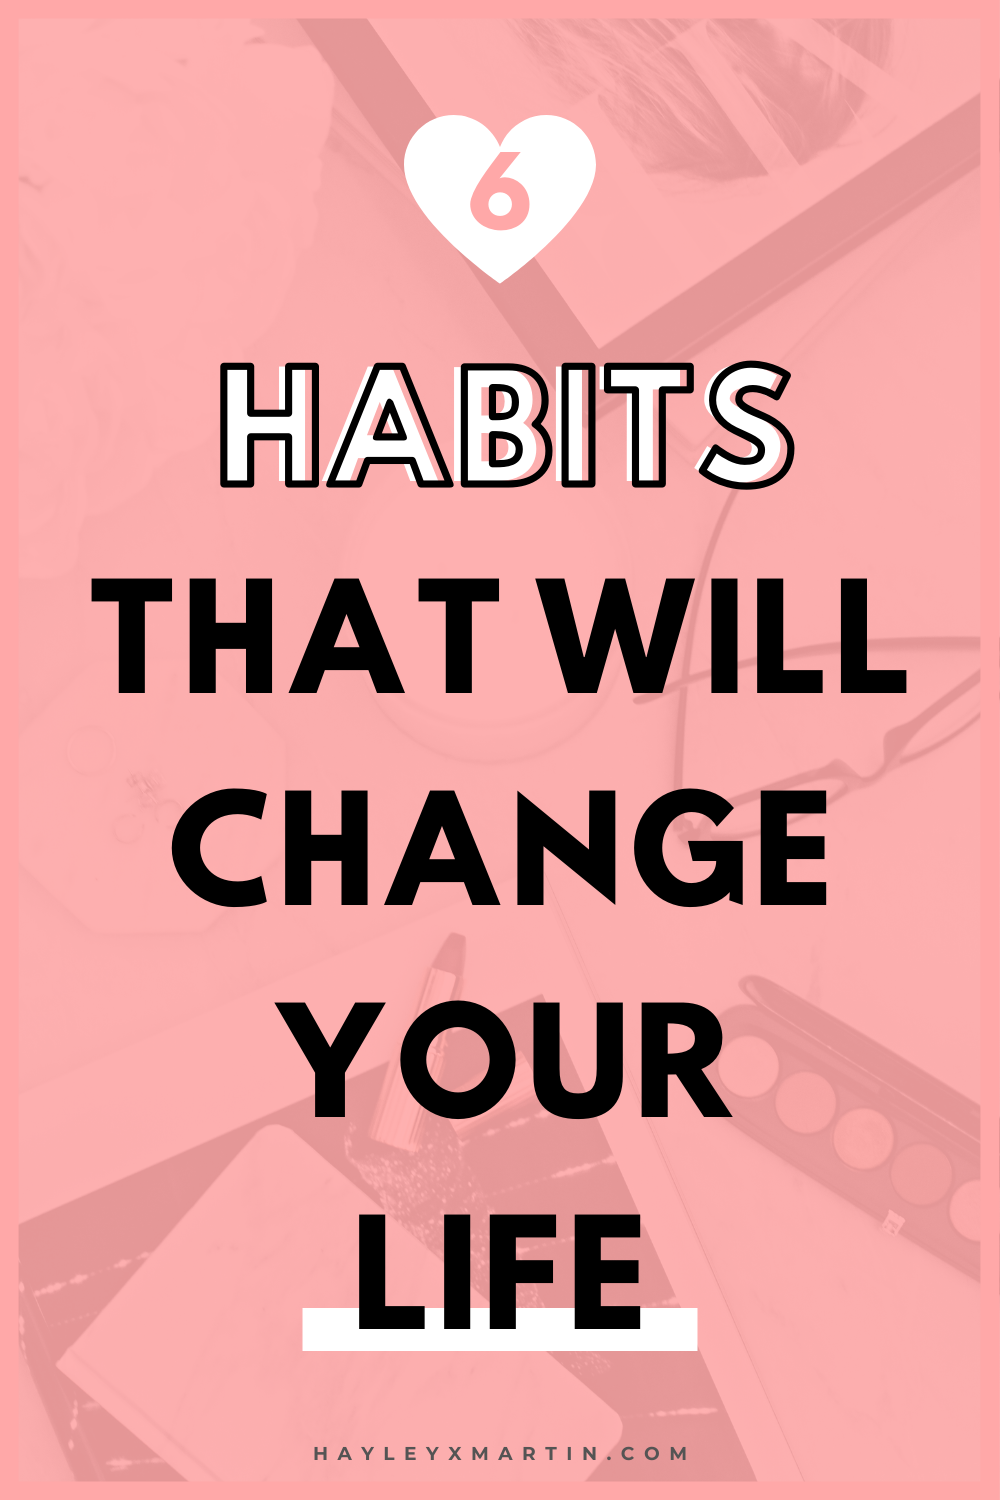 6 HABITS THAT WILL CHANGE YOUR LIFE | HAYLEYXMARTIN